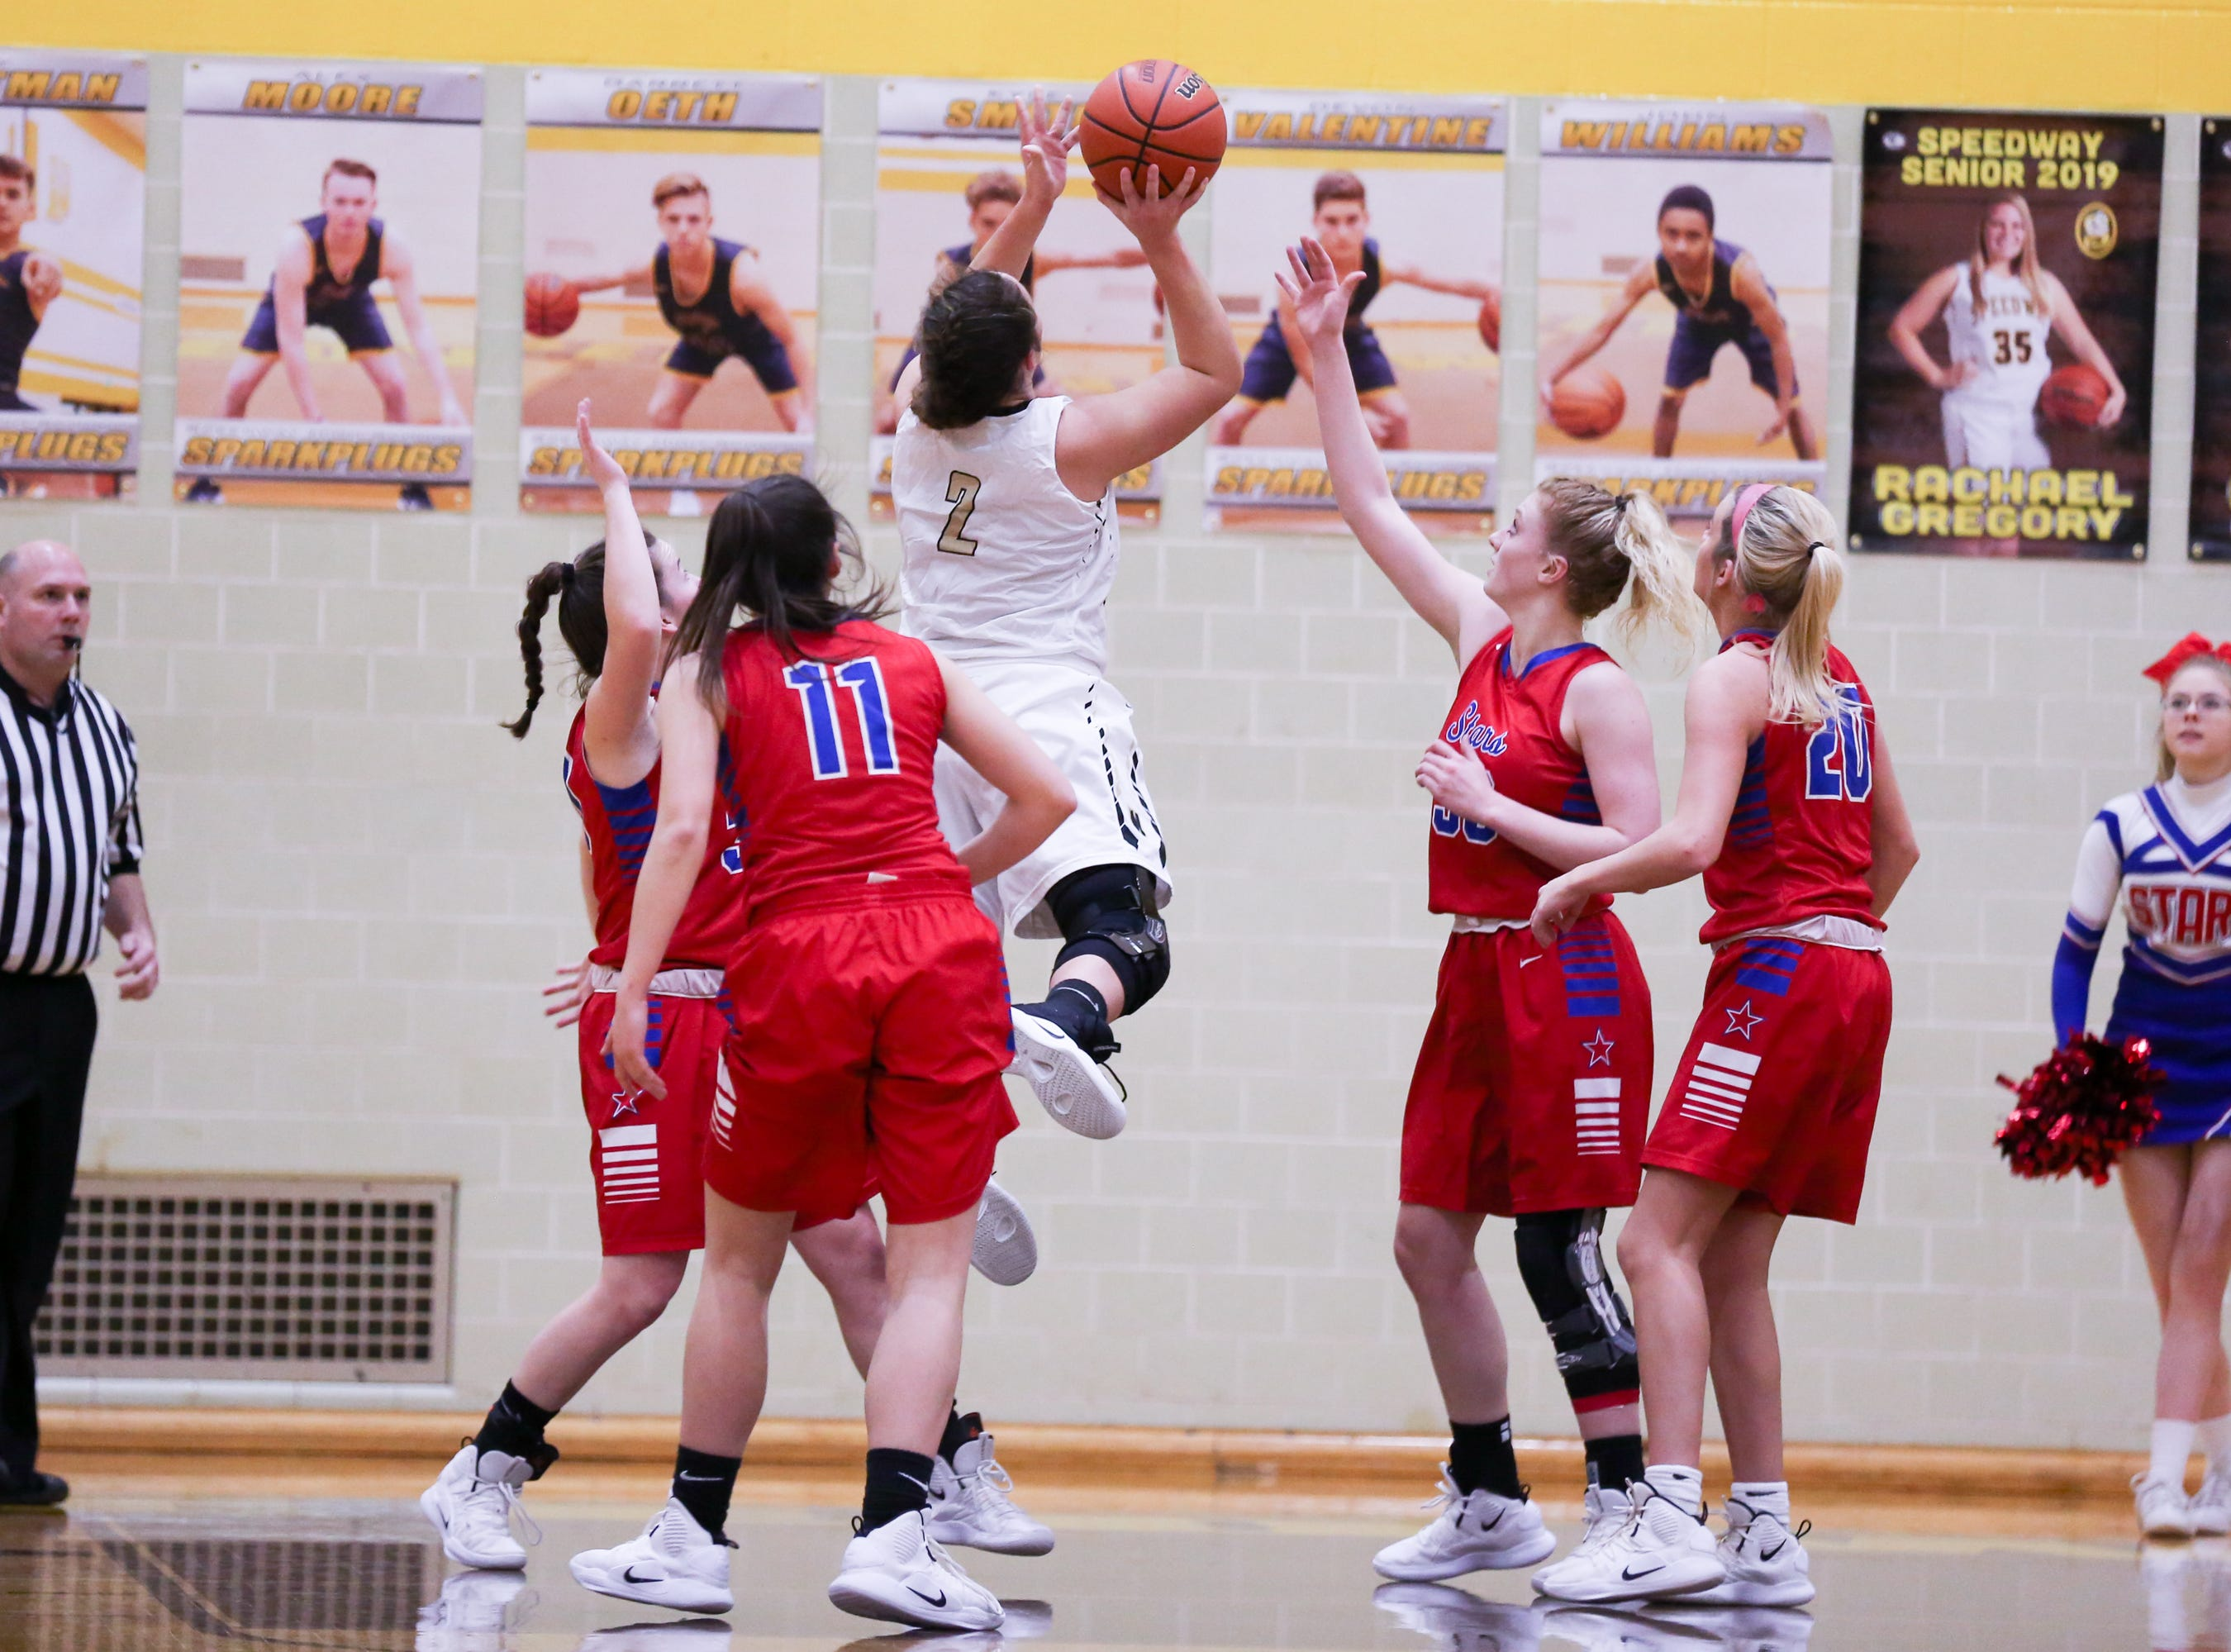 Winchester Community Madeline Lawrence (2) finds an opening for a short jump shot during the first half of Western Boone vs. Winchester Community high school girls varsity 2A Regional basketball tournament held at Speedway High School, February 9, 2019.